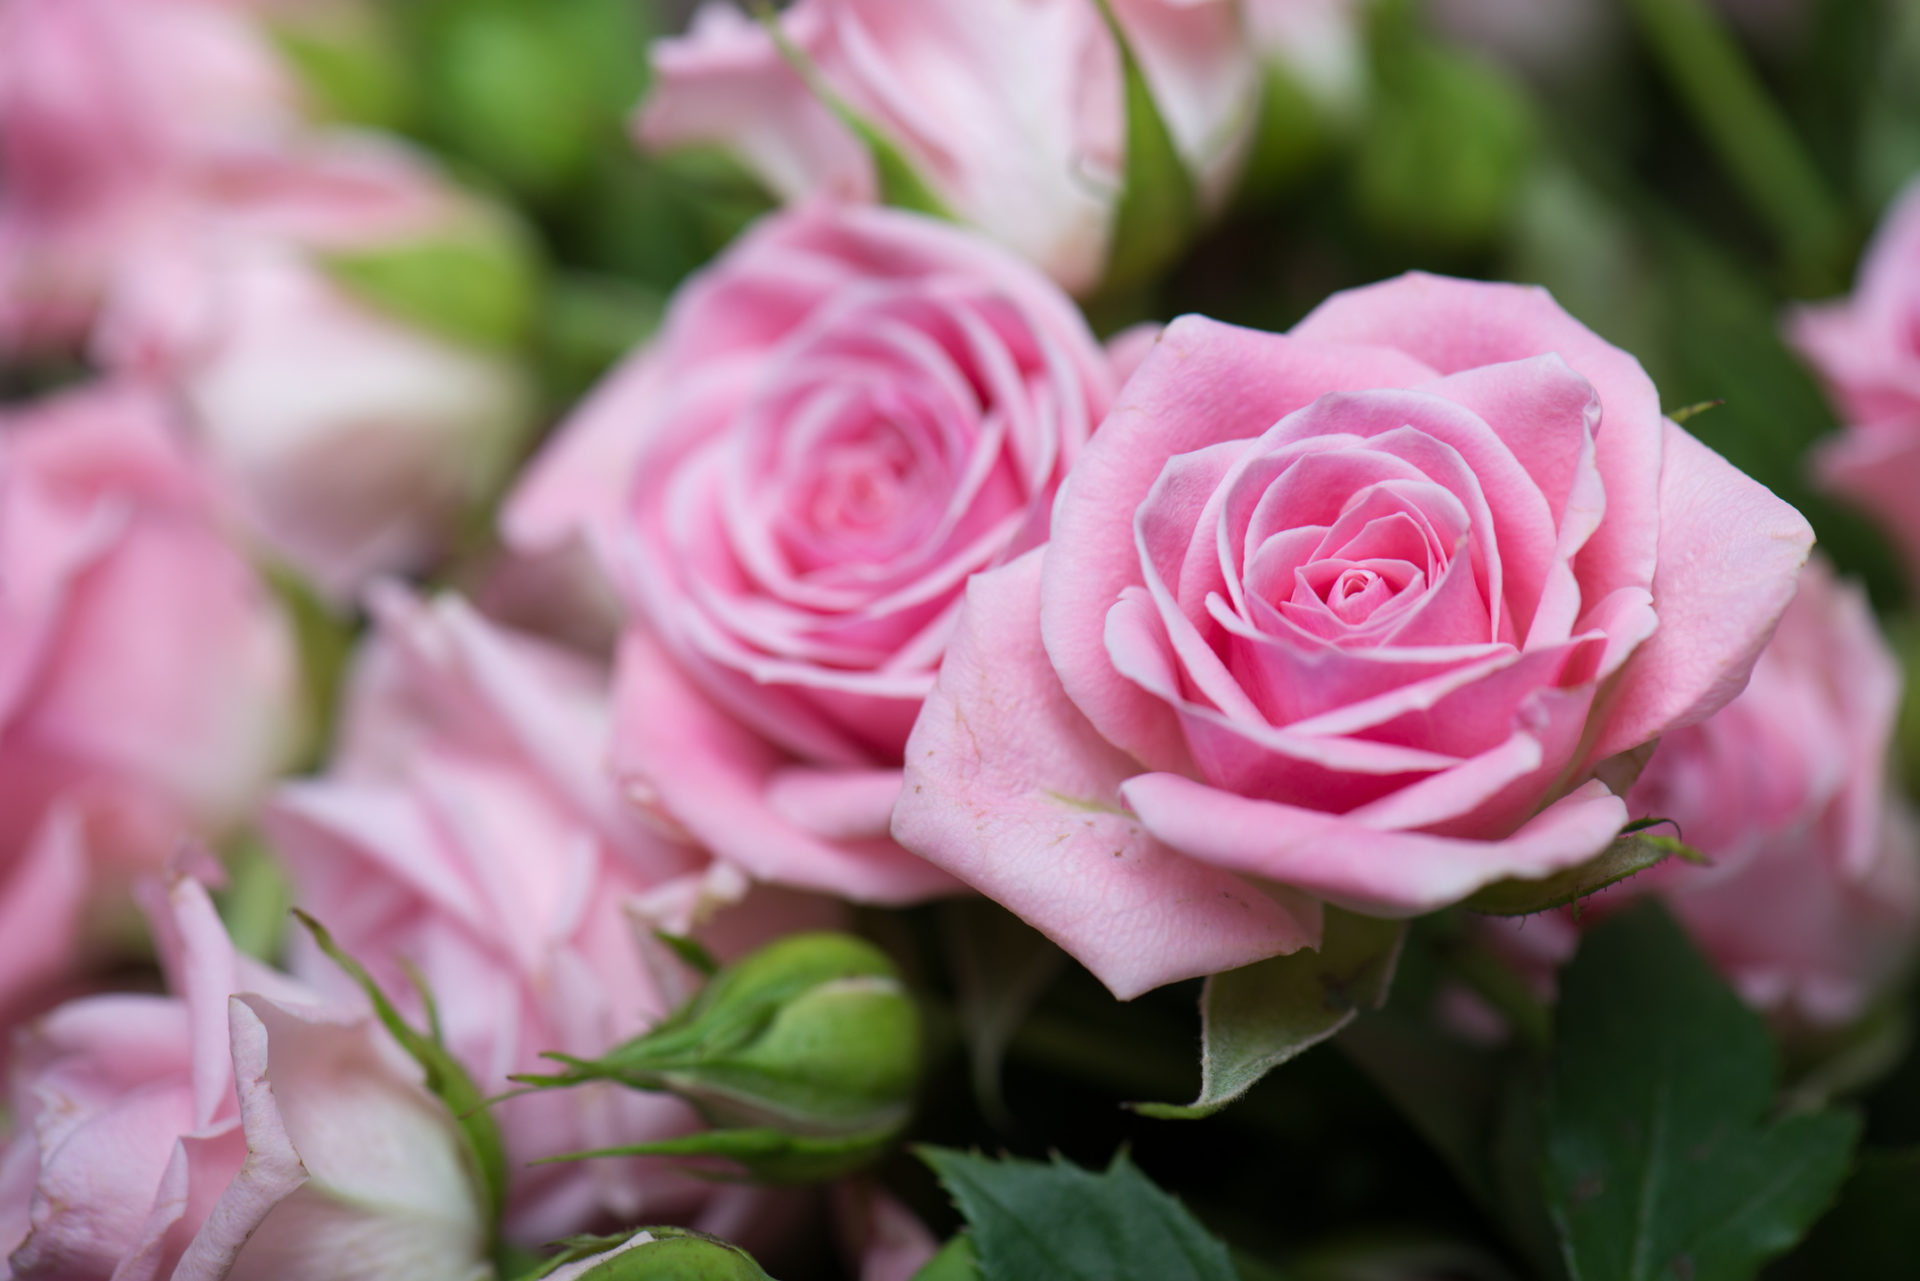 Roses Love Flowers Hd Wallpaper Theme Impressive Nature